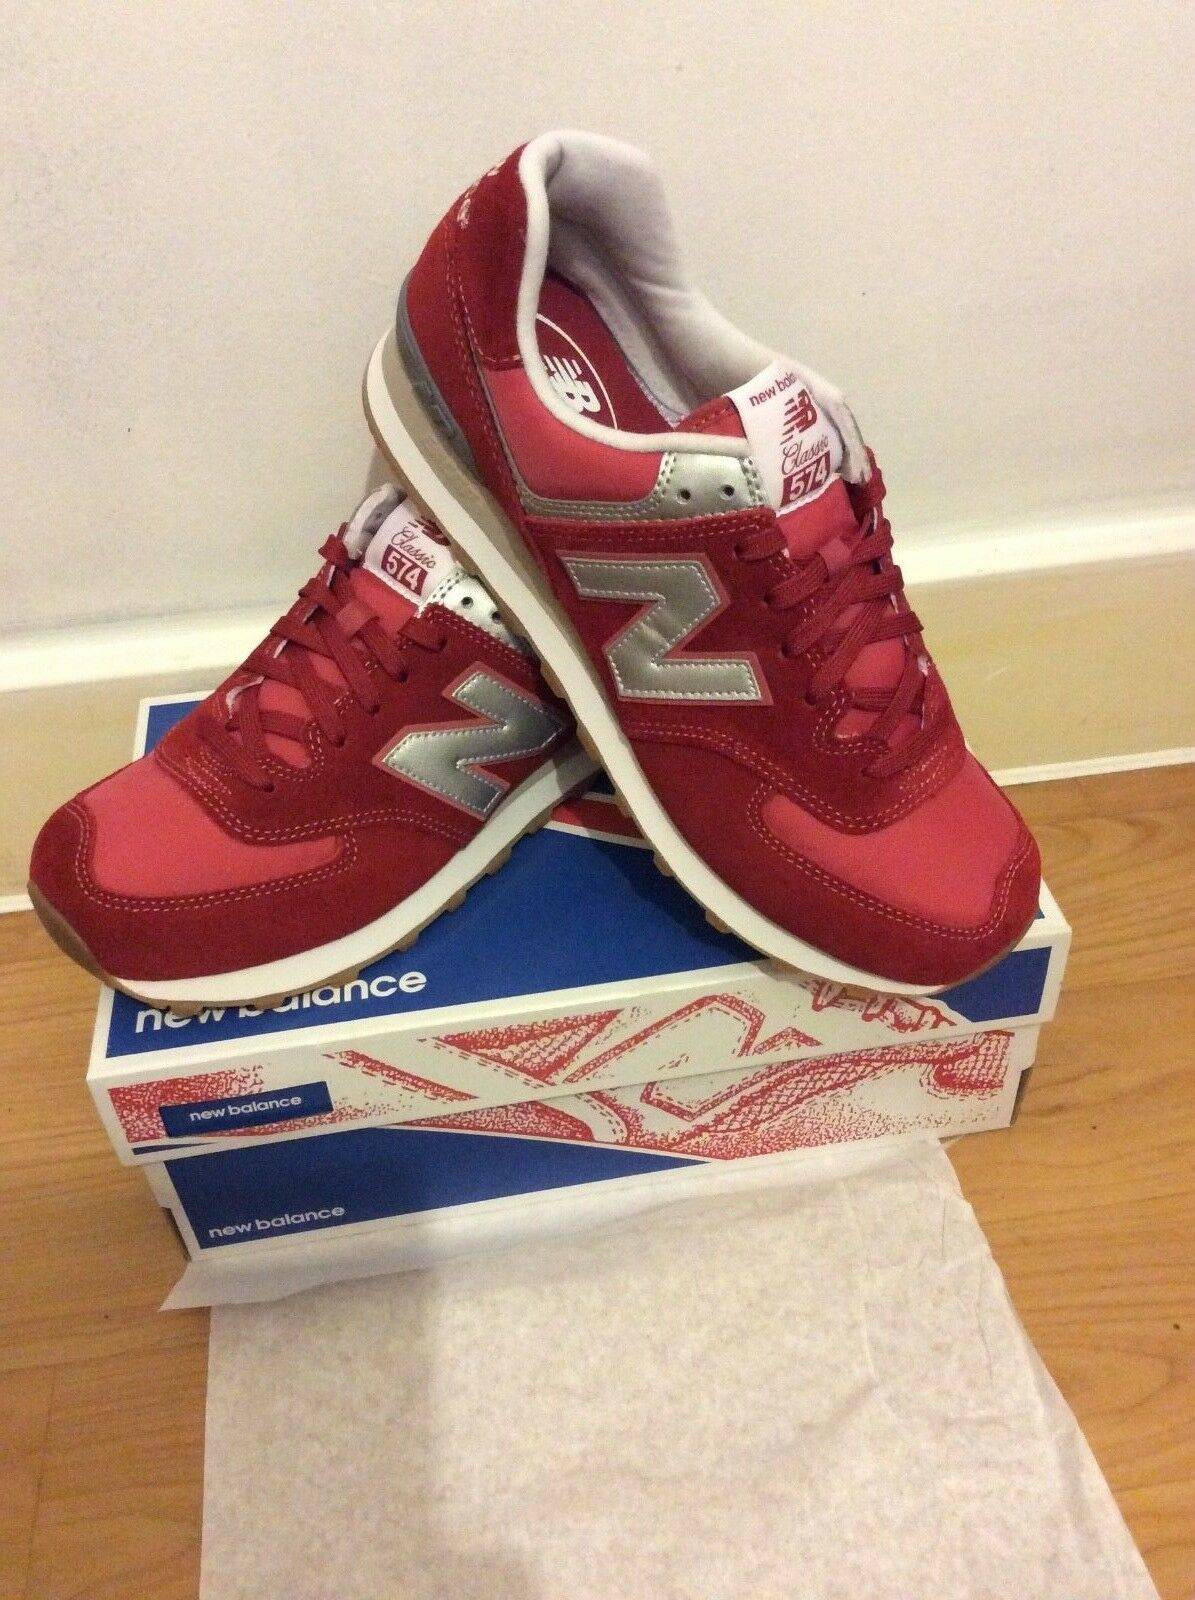 New balance 574 in size 10.5 EUR (90325575694)